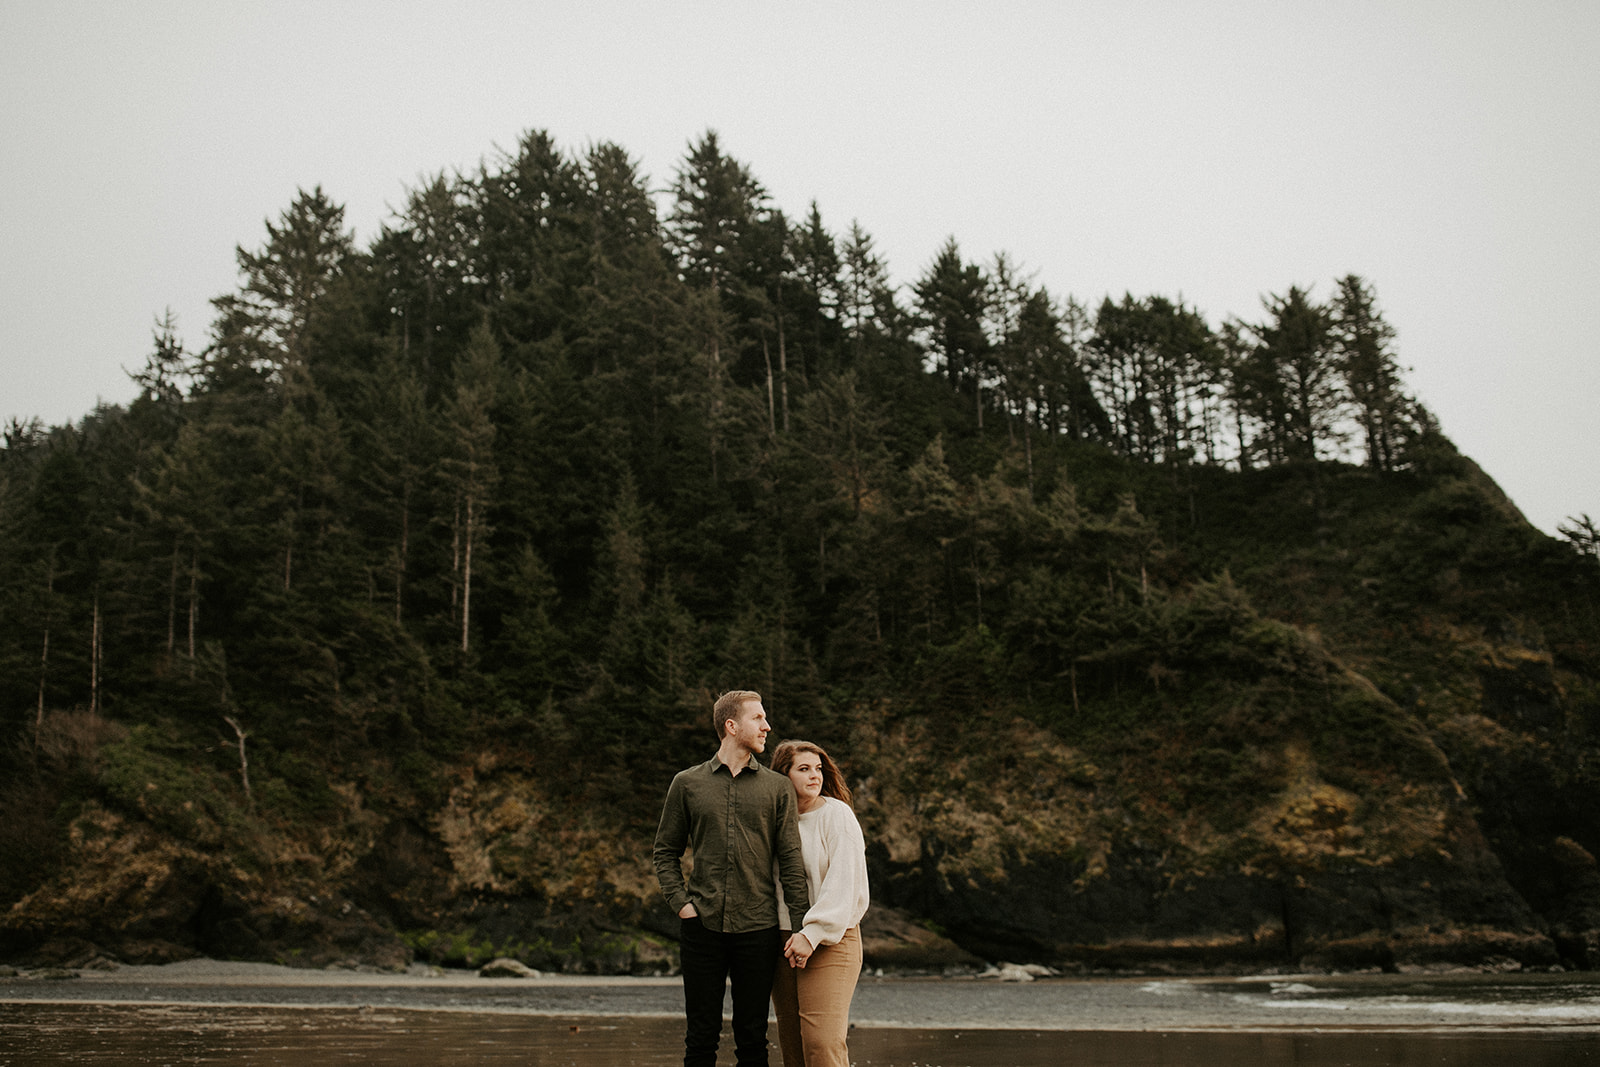 Emily_and_Jeff_Oregon_Coast_Engagement_Dawn_Charles_Photographer-193.jpg